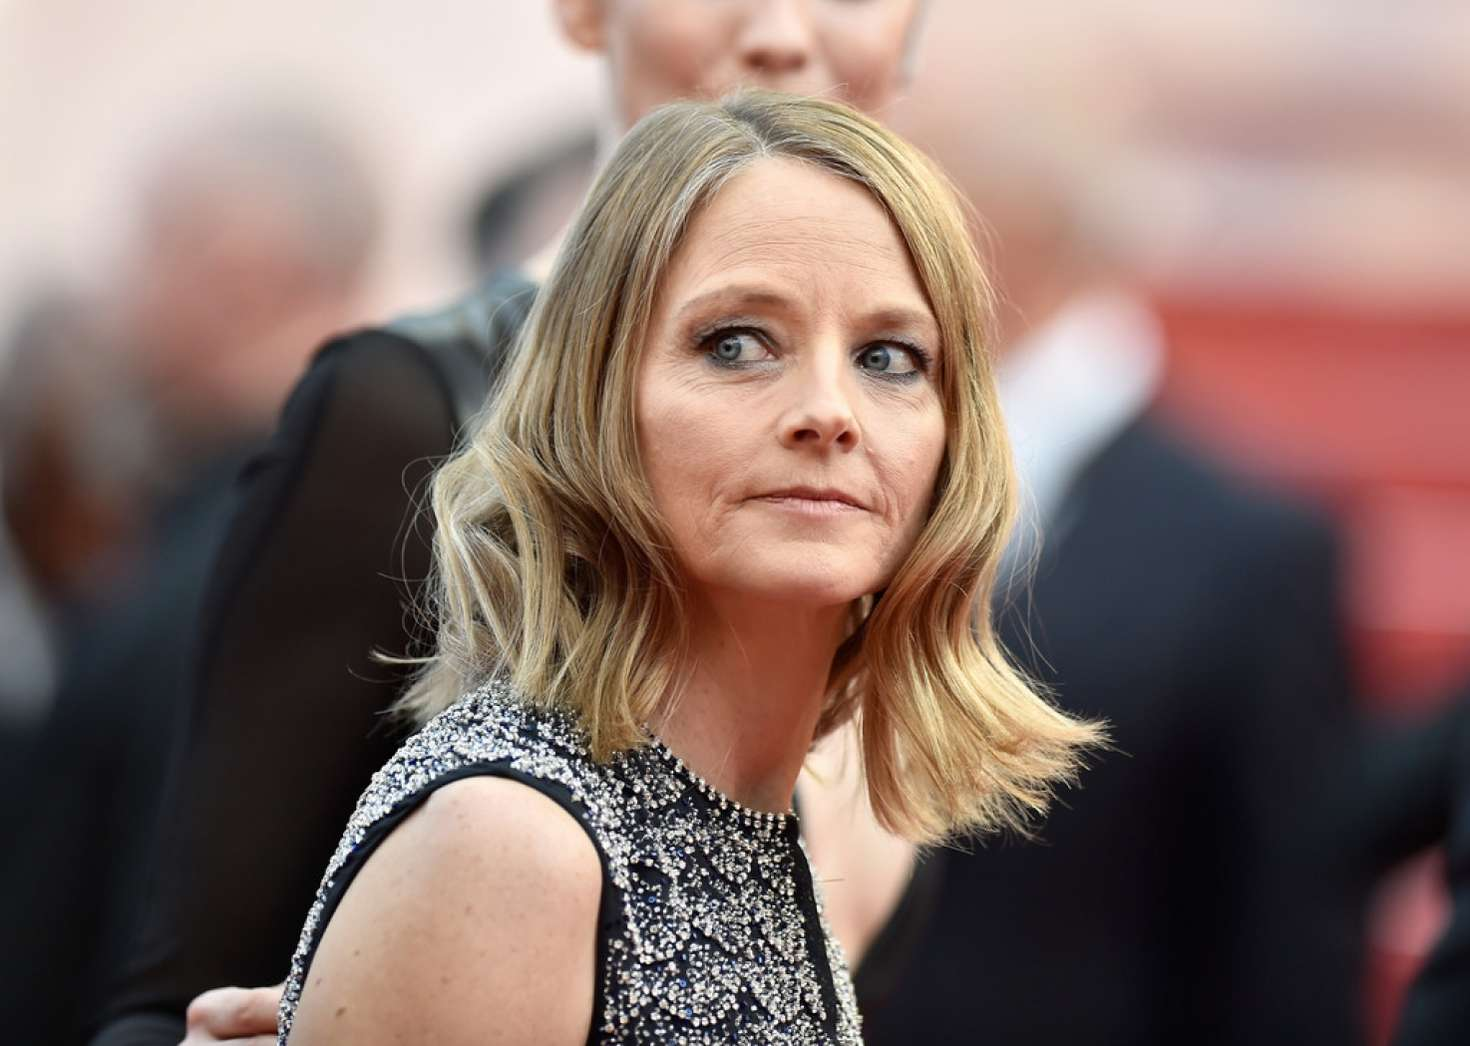 Jodie Foster Money Monster Premiere At 2016 Cannes Film Festival